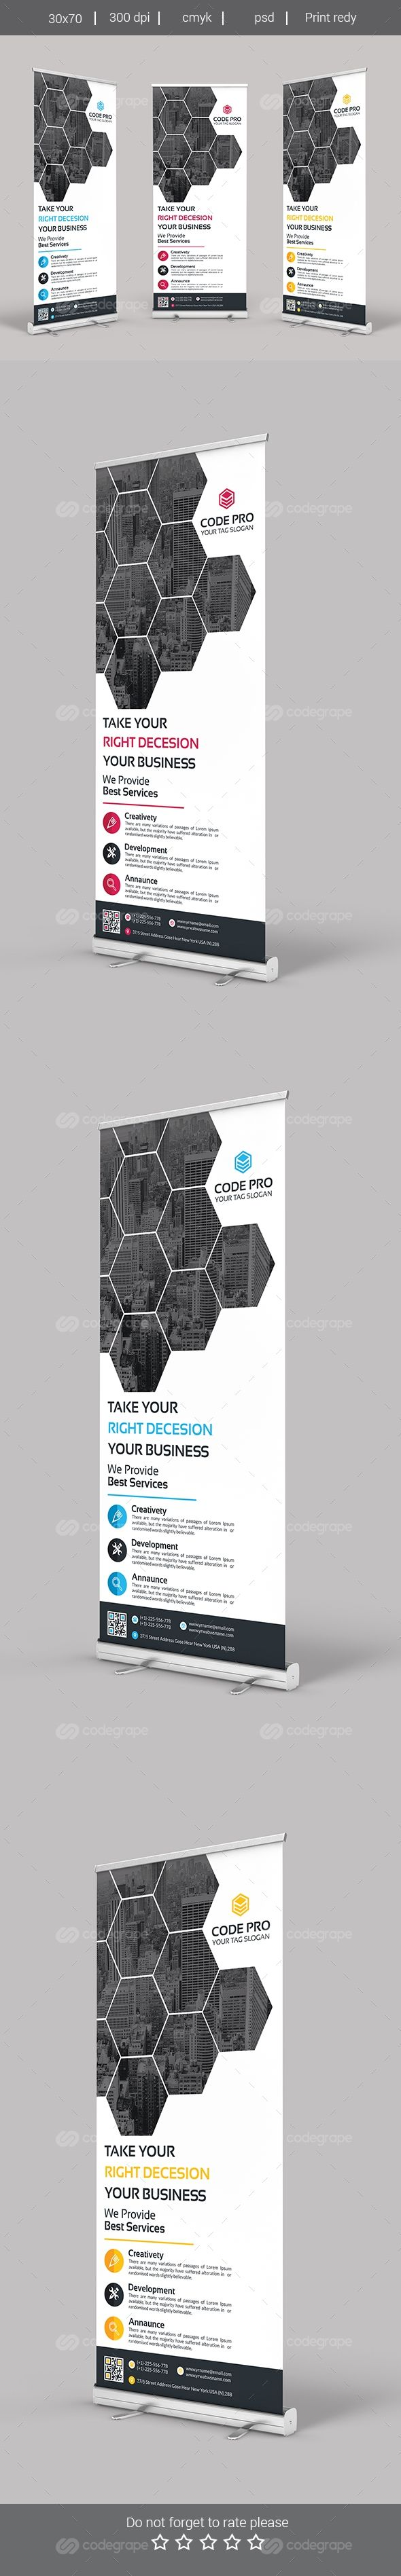 Roll Up Banner on @codegrape. More Info: http://www.codegrape.com/item/roll-up-banner/9337